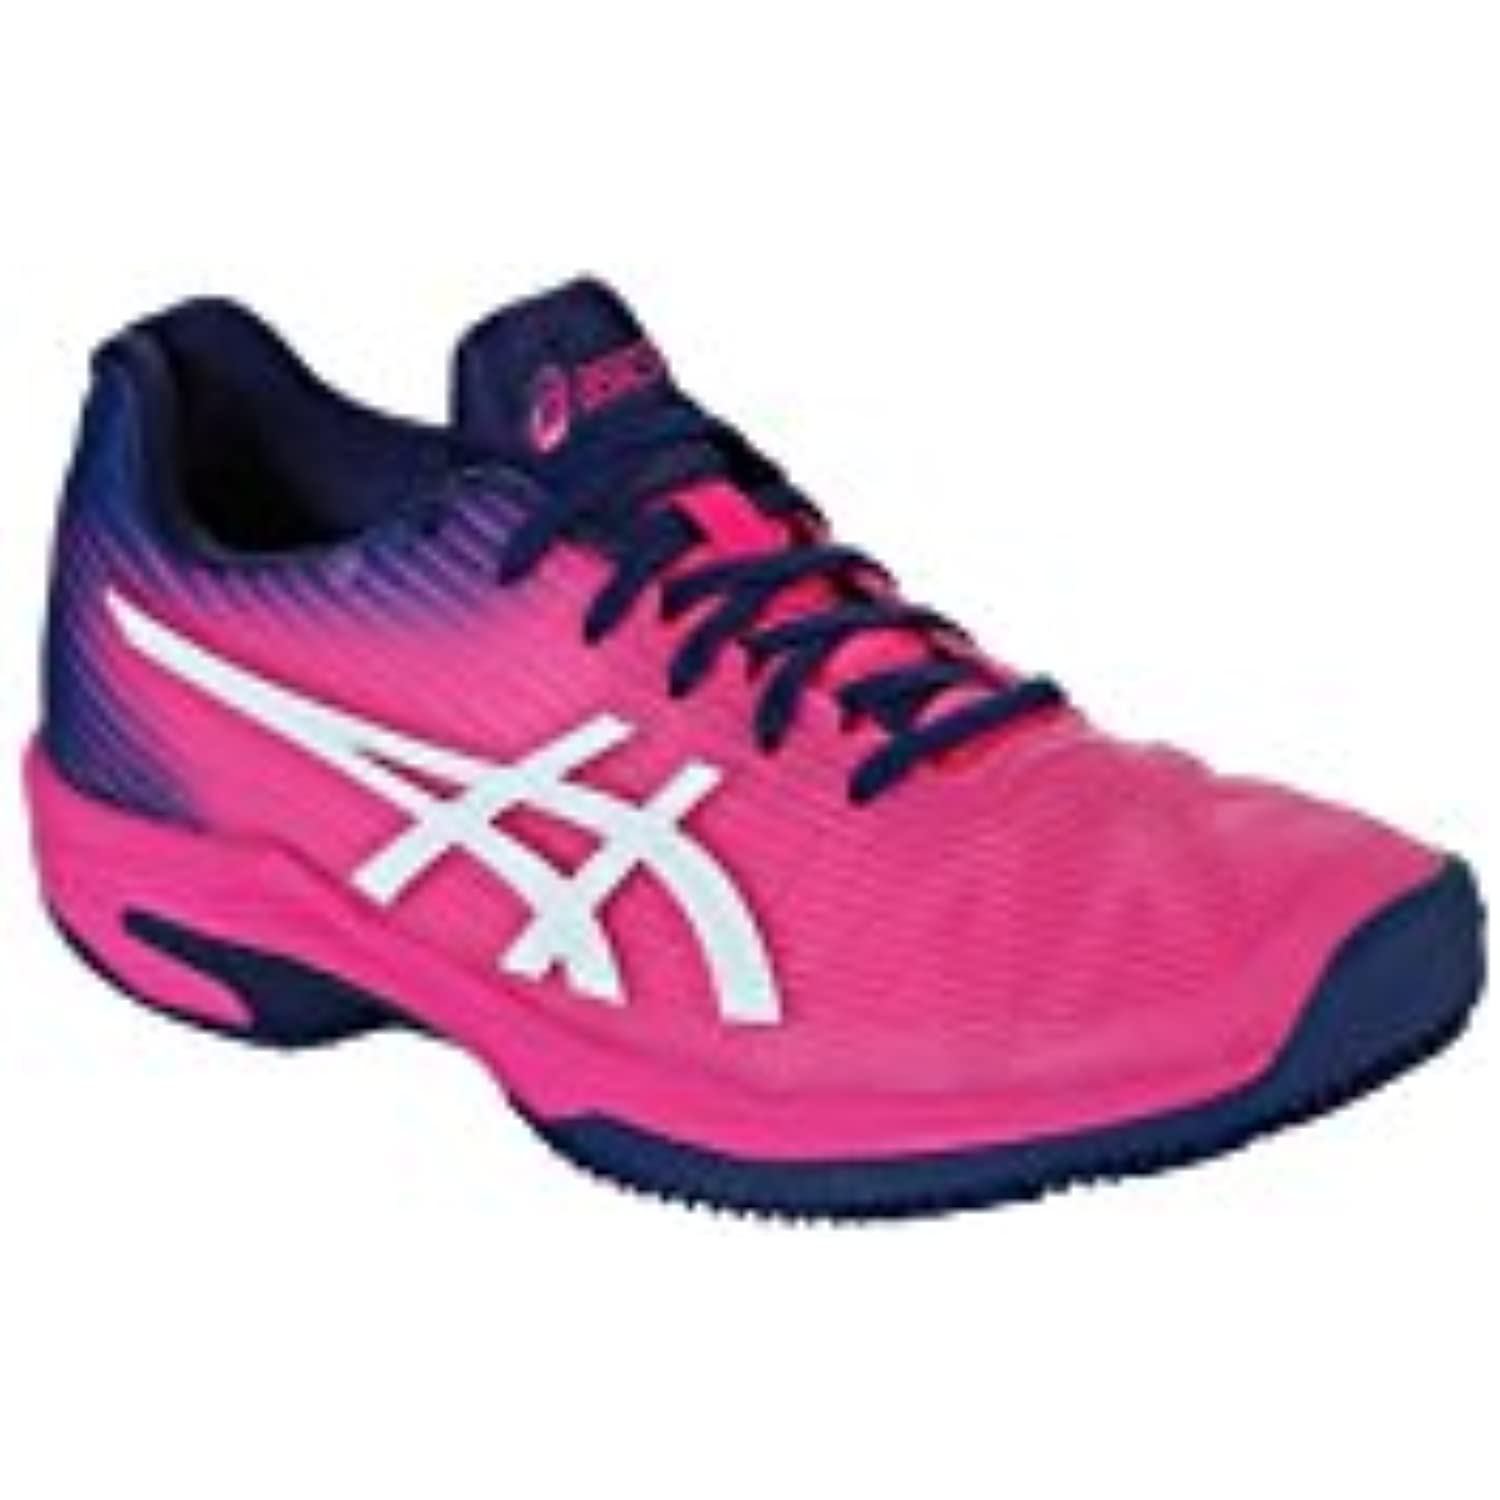 Asics Chaussures Femme Solution Speed FF Clay Rose/Indigo AH AH AH 2018 - B07FNTB1Z3 - 4c71db